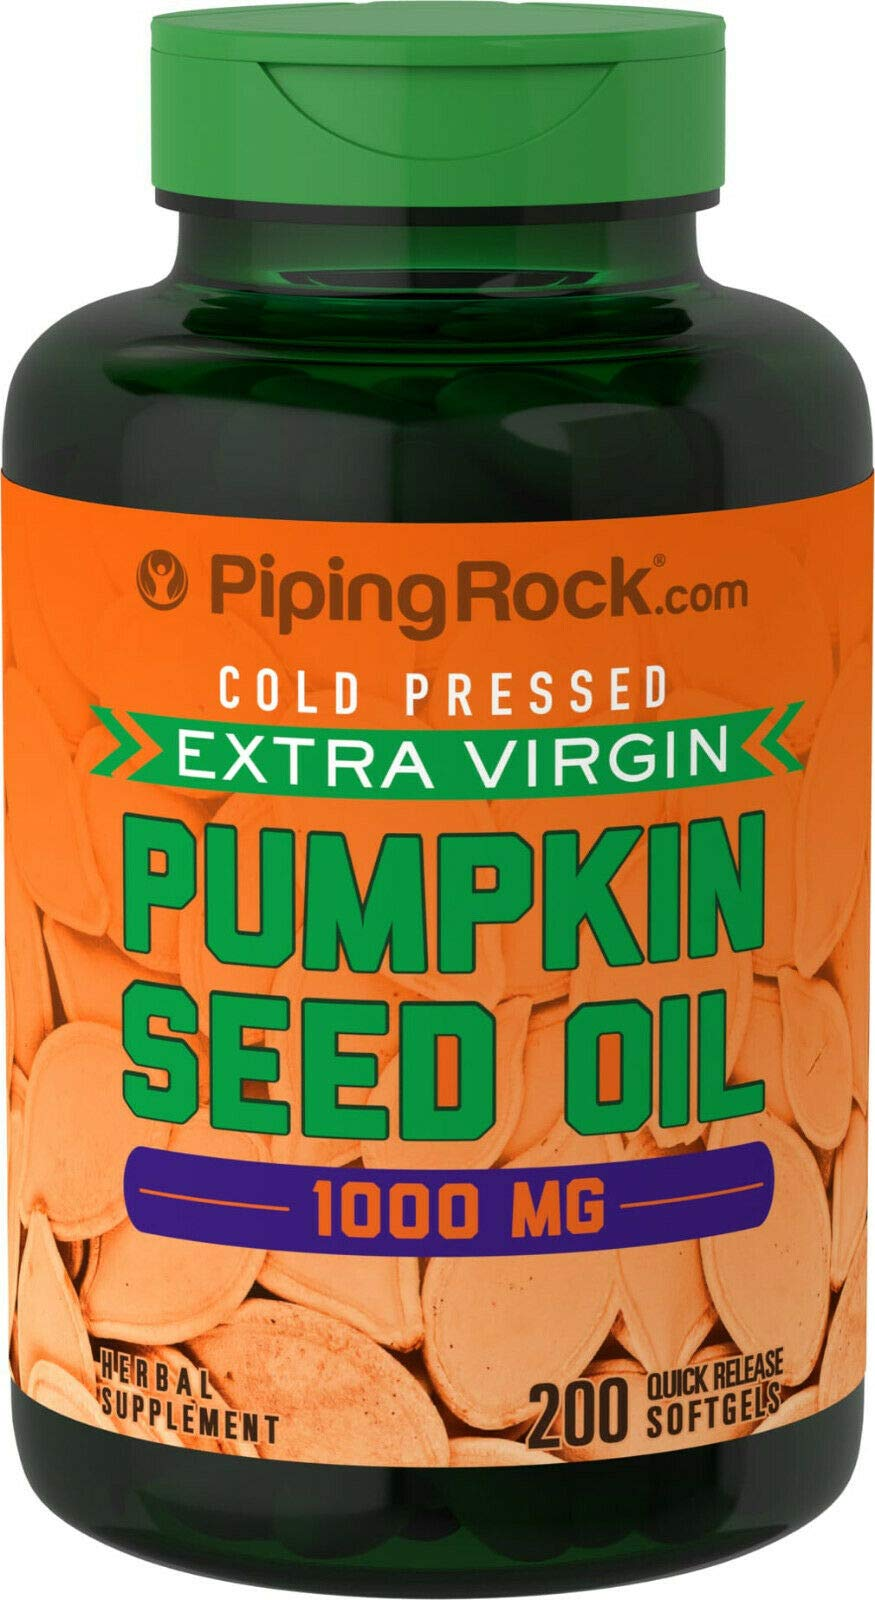 200 x 1000mg Pumpkin Seed Oil Softgel Capsules - Quick Release - 1st Class P&P